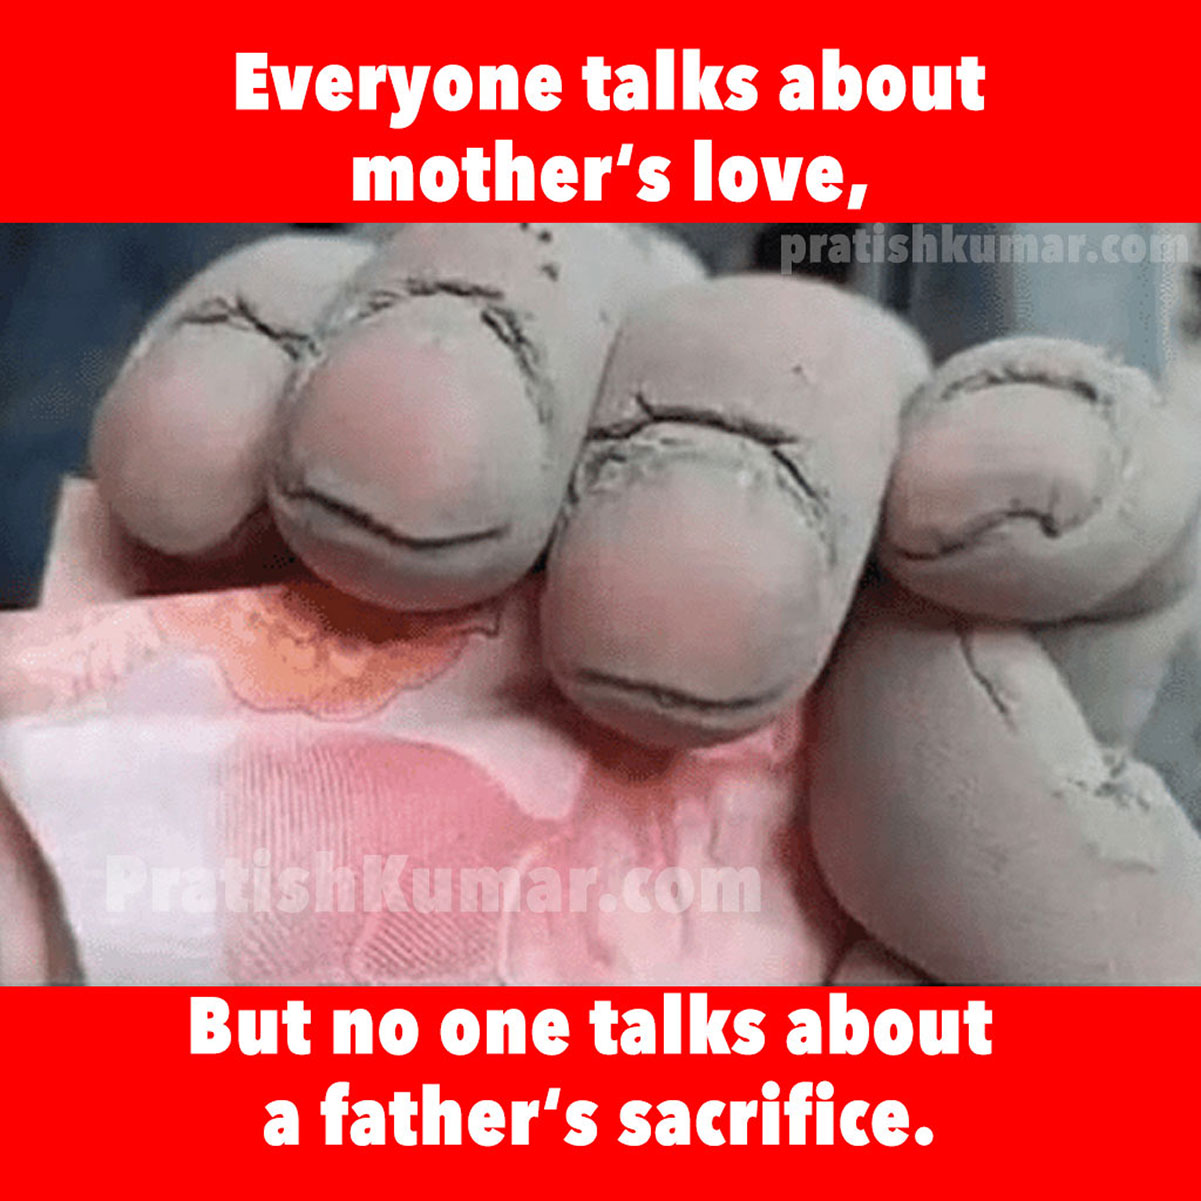 Everybody talks about mother's love nobody talks about father's sacrifice - Inspirational Image